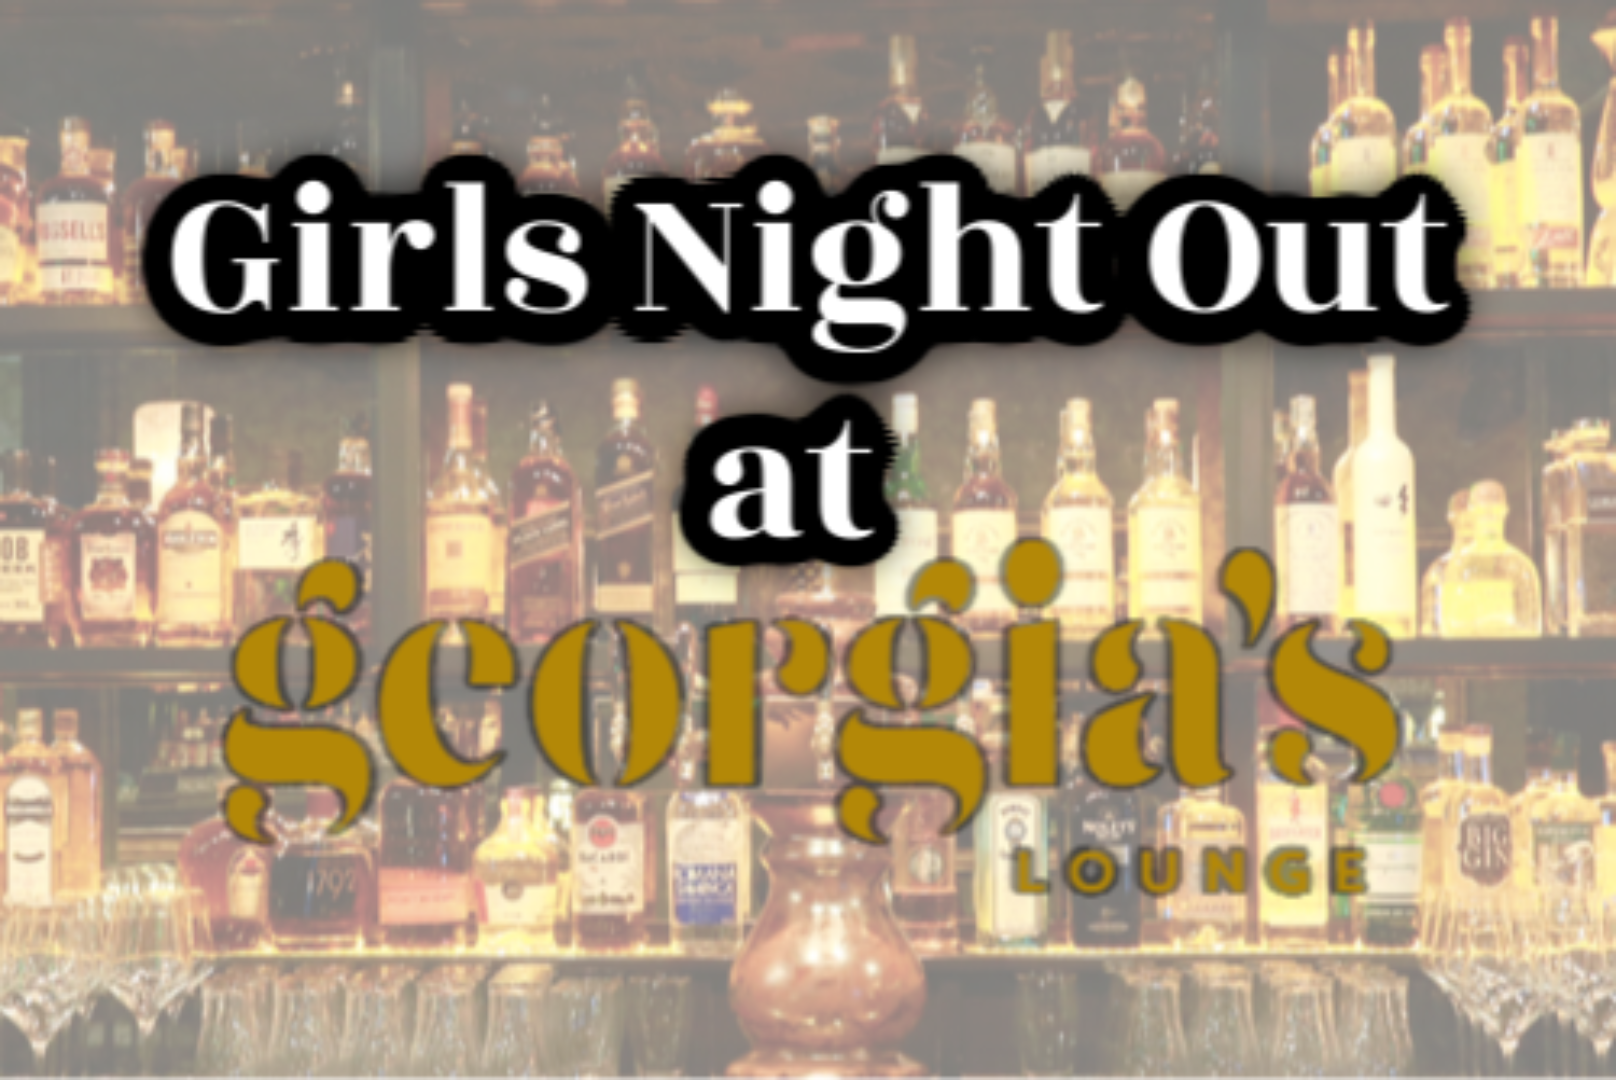 Mom's night out at Georgia's Lounge